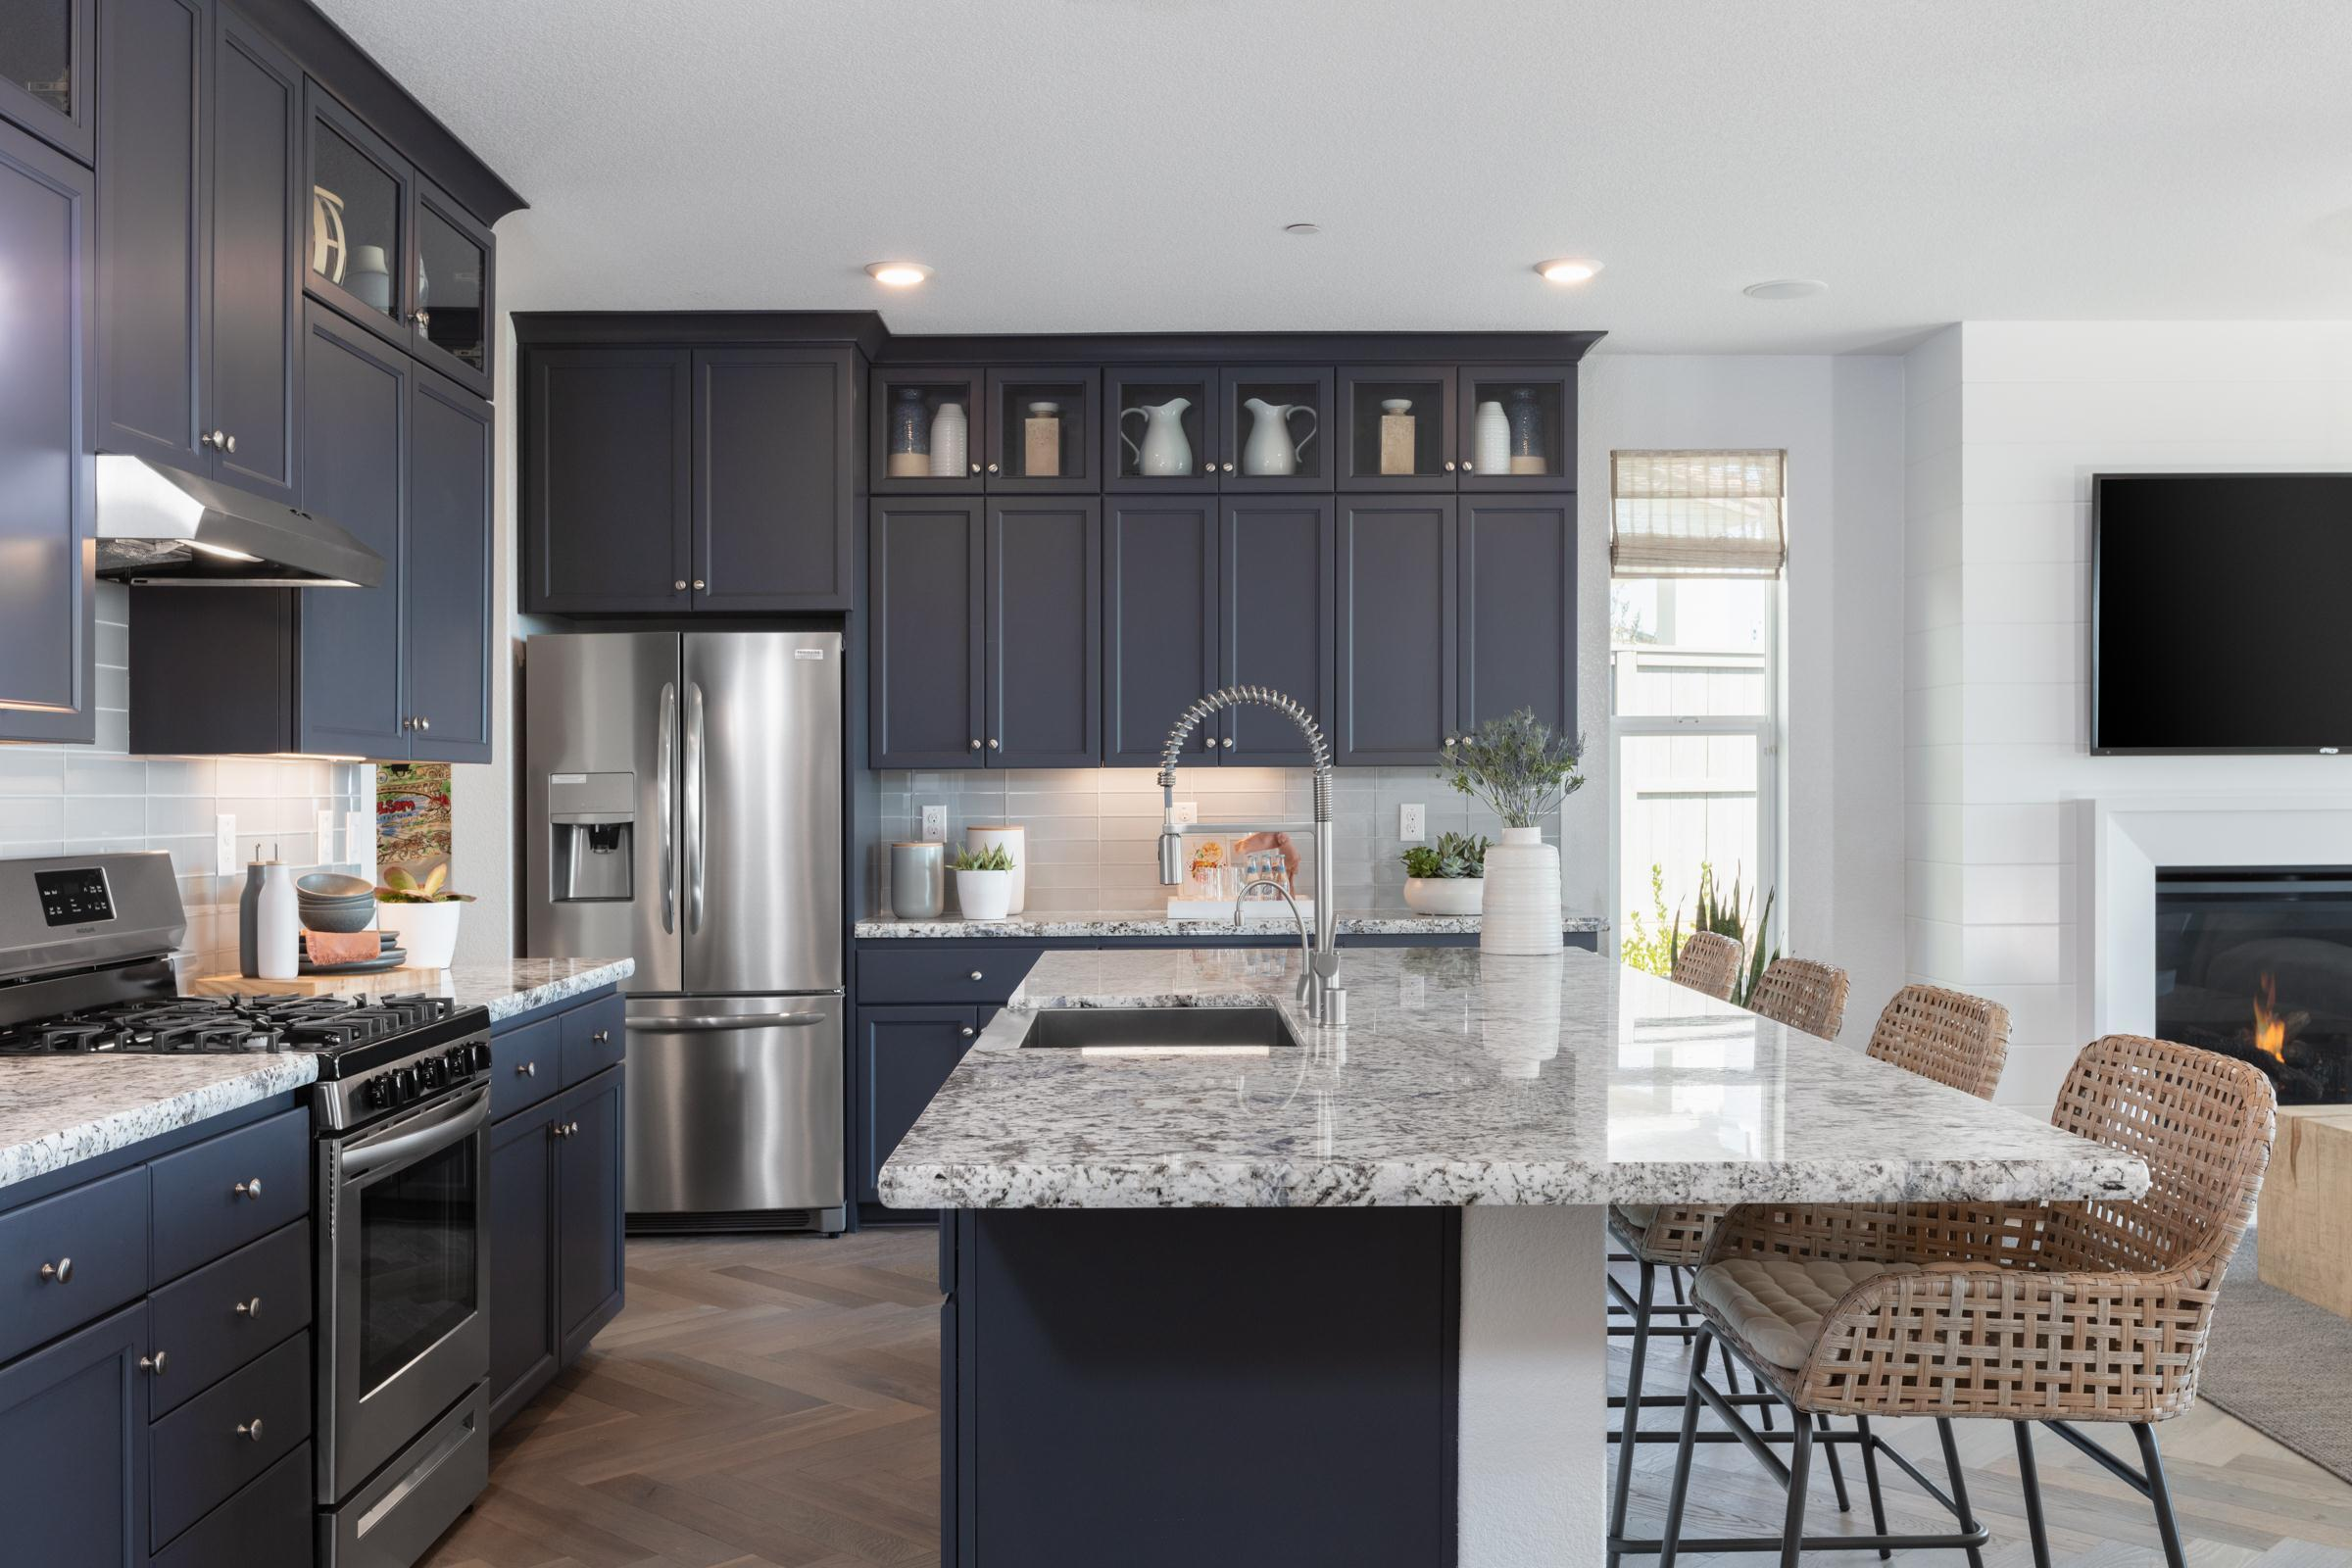 Kitchen featured in the Plan 1 Iron Ridge By Anthem United Homes Inc in Sacramento, CA